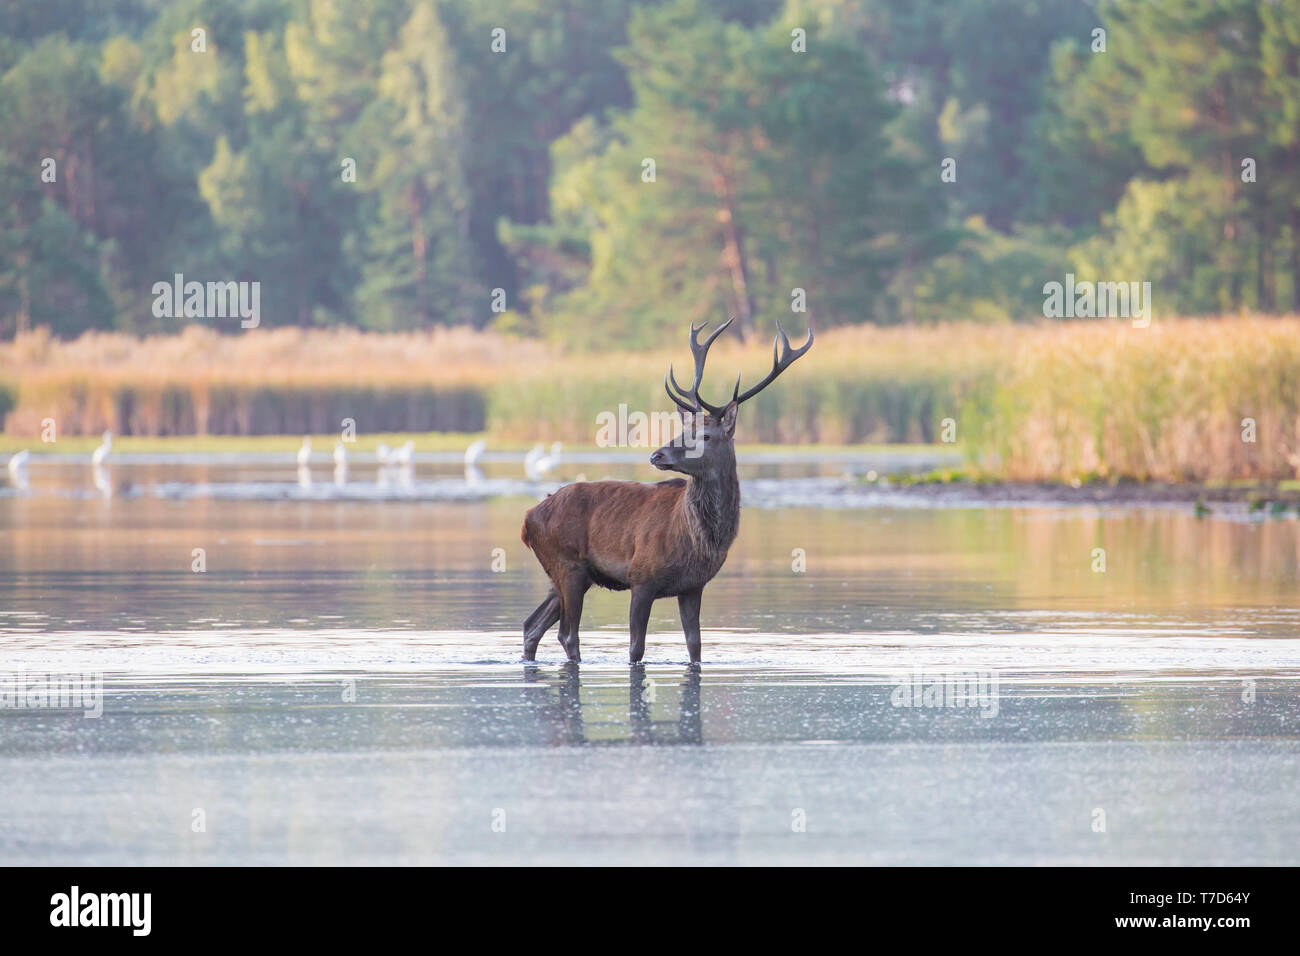 Solitary red deer (Cervus elaphus) stag standing in shallow water of lake / stream / river during the rut in autumn / fall - Stock Image